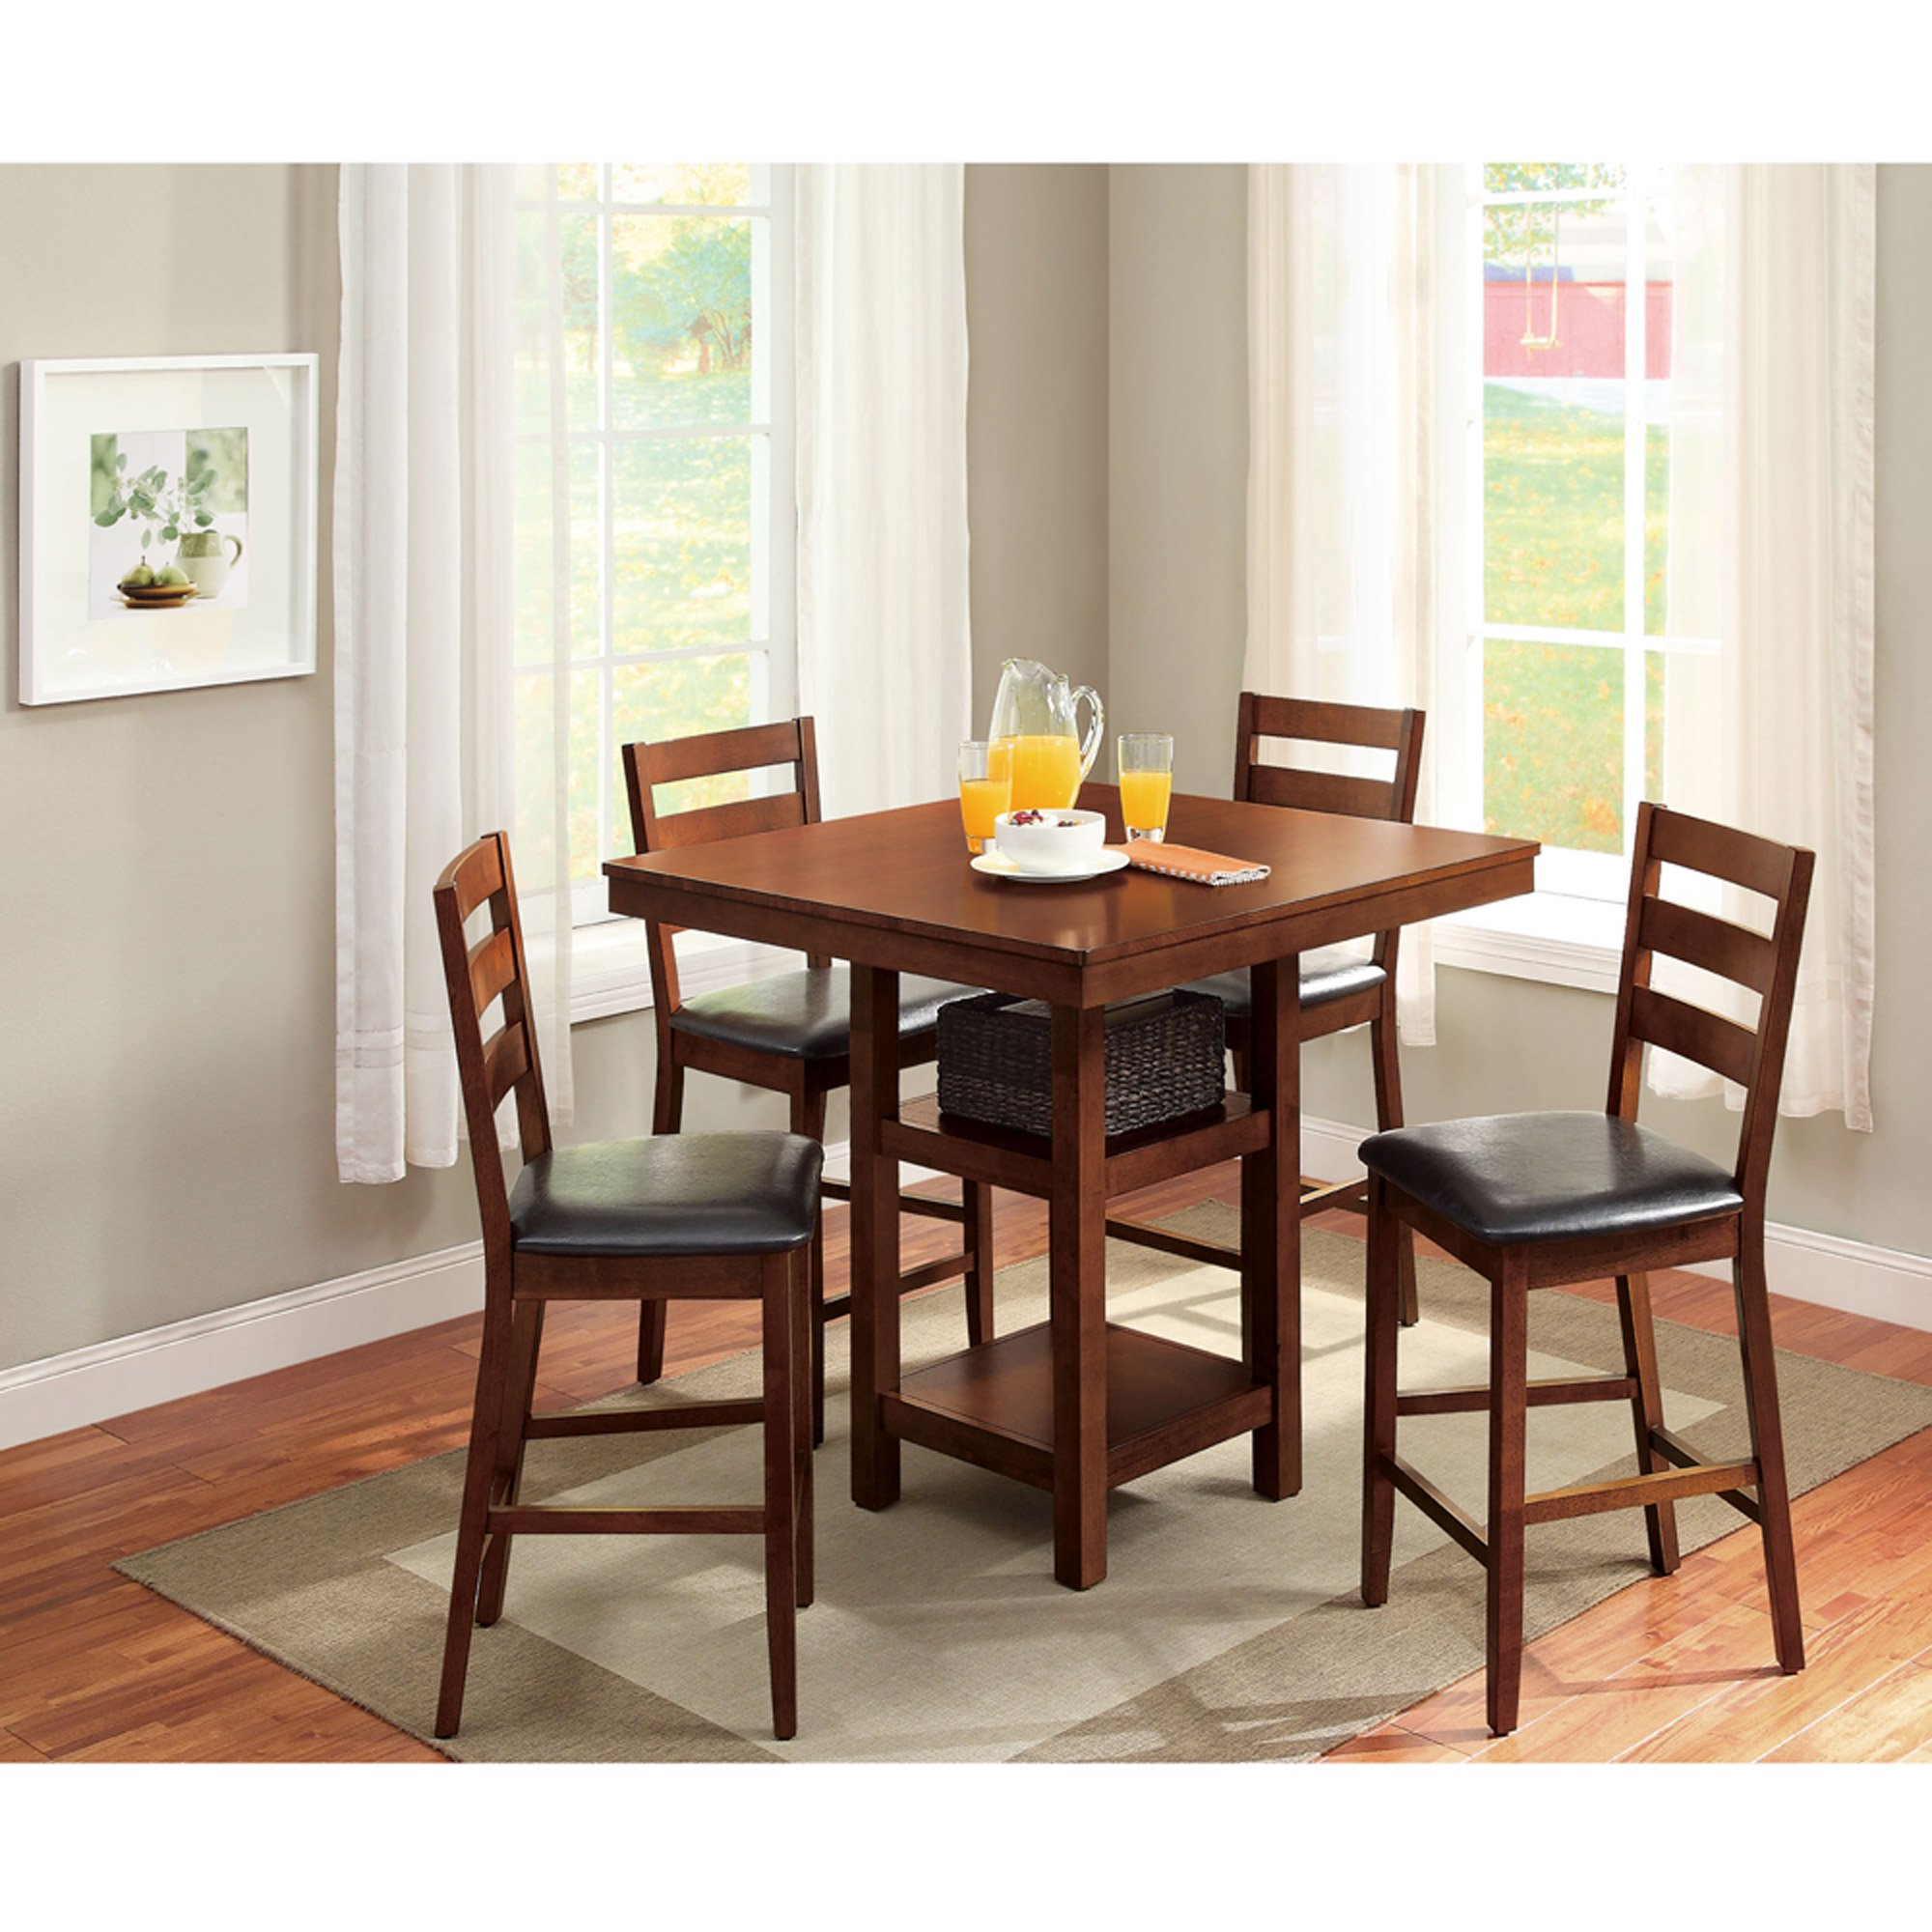 Better Homes U0026 Gardens Dalton Park 5 Piece Counter Height Dining Set